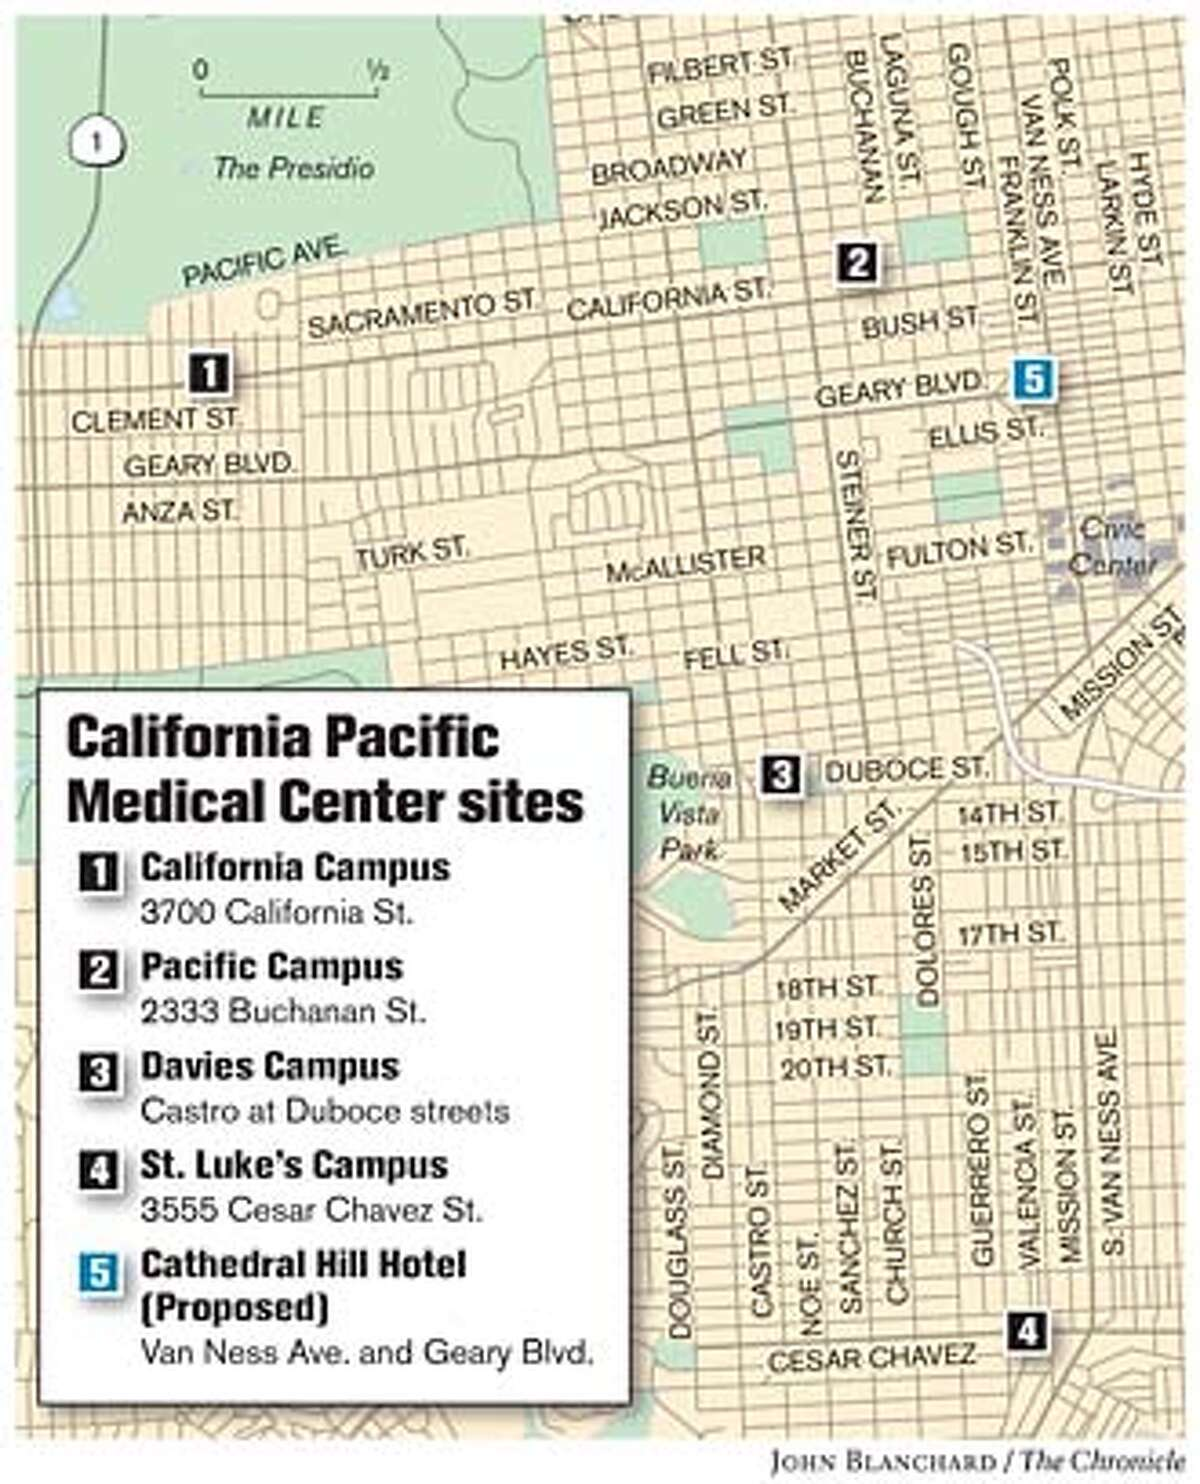 California Pacific Medical Center sites. Chronicle graphic by John Blanchard